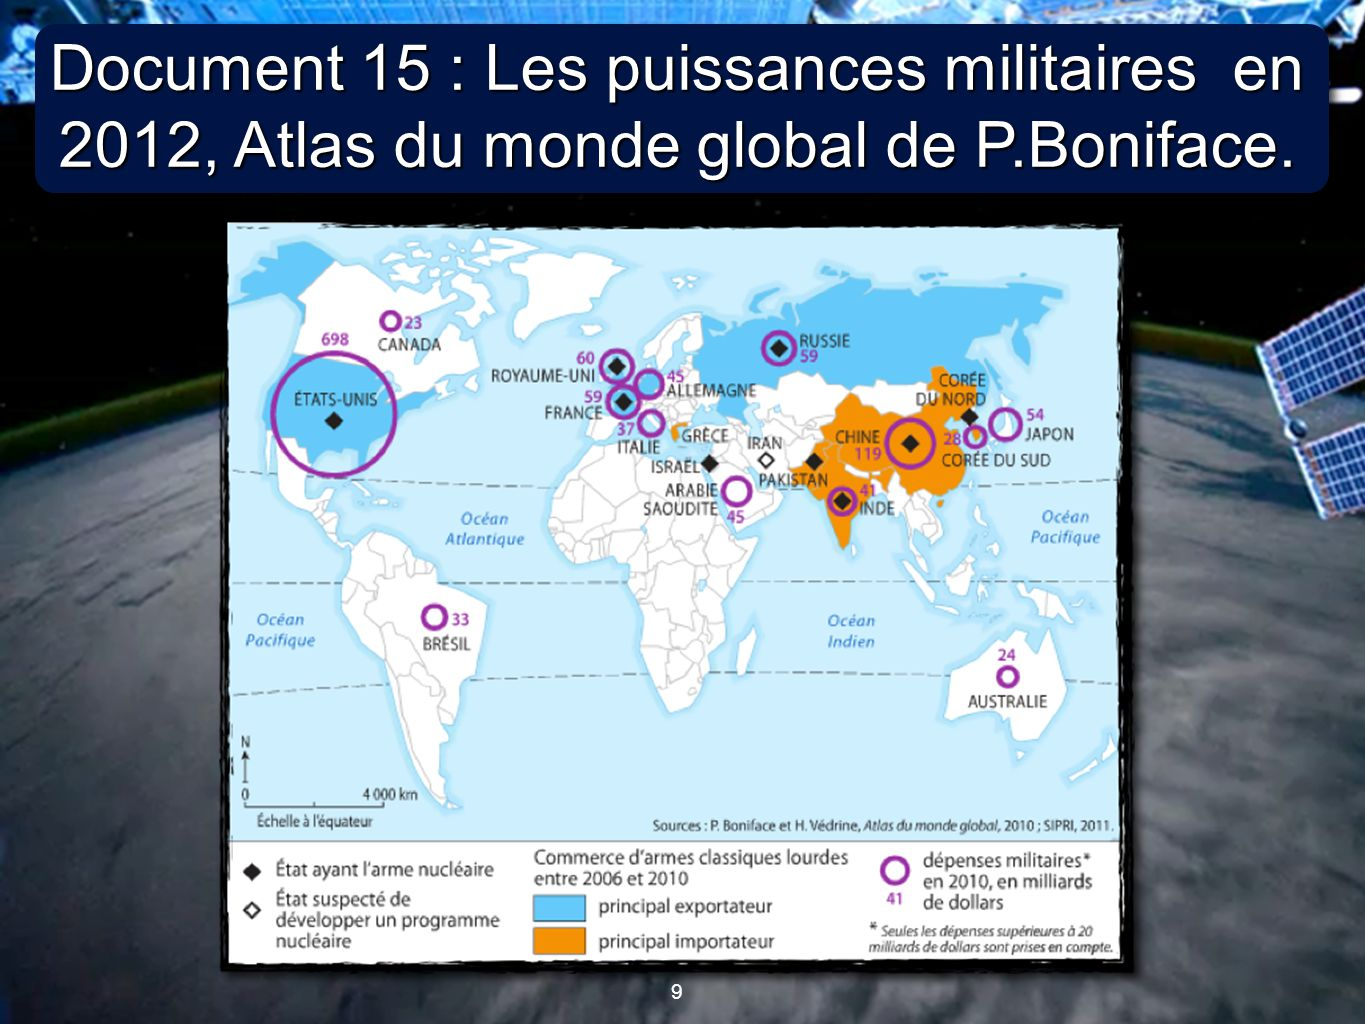 Document 15 : Les puissances militaires en 2012, Atlas du monde global de P.Boniface.